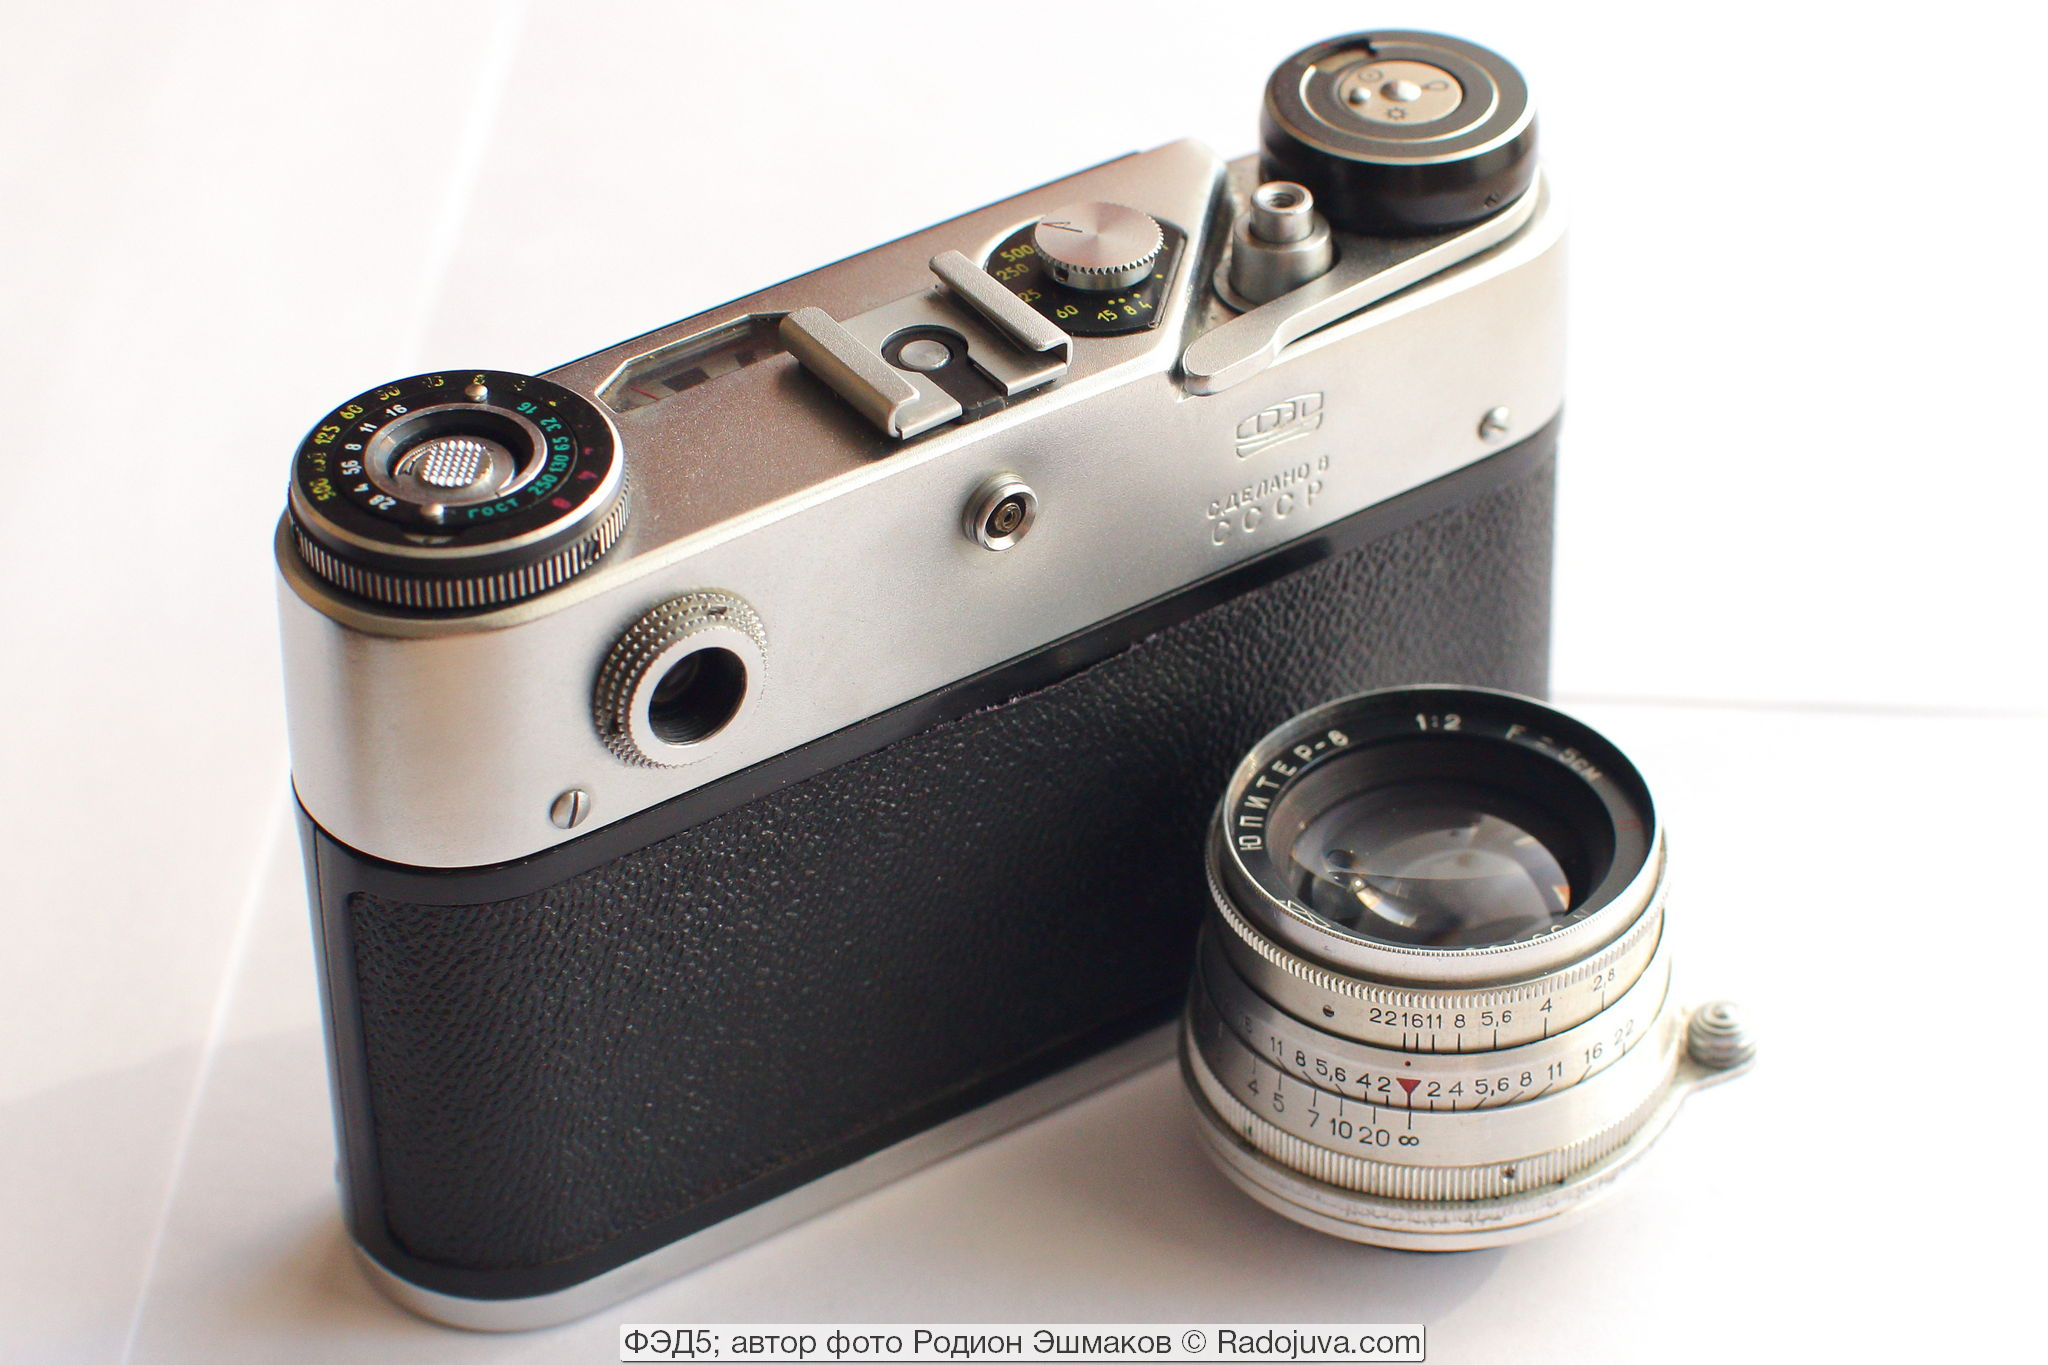 Rear view of the FED-5 camera